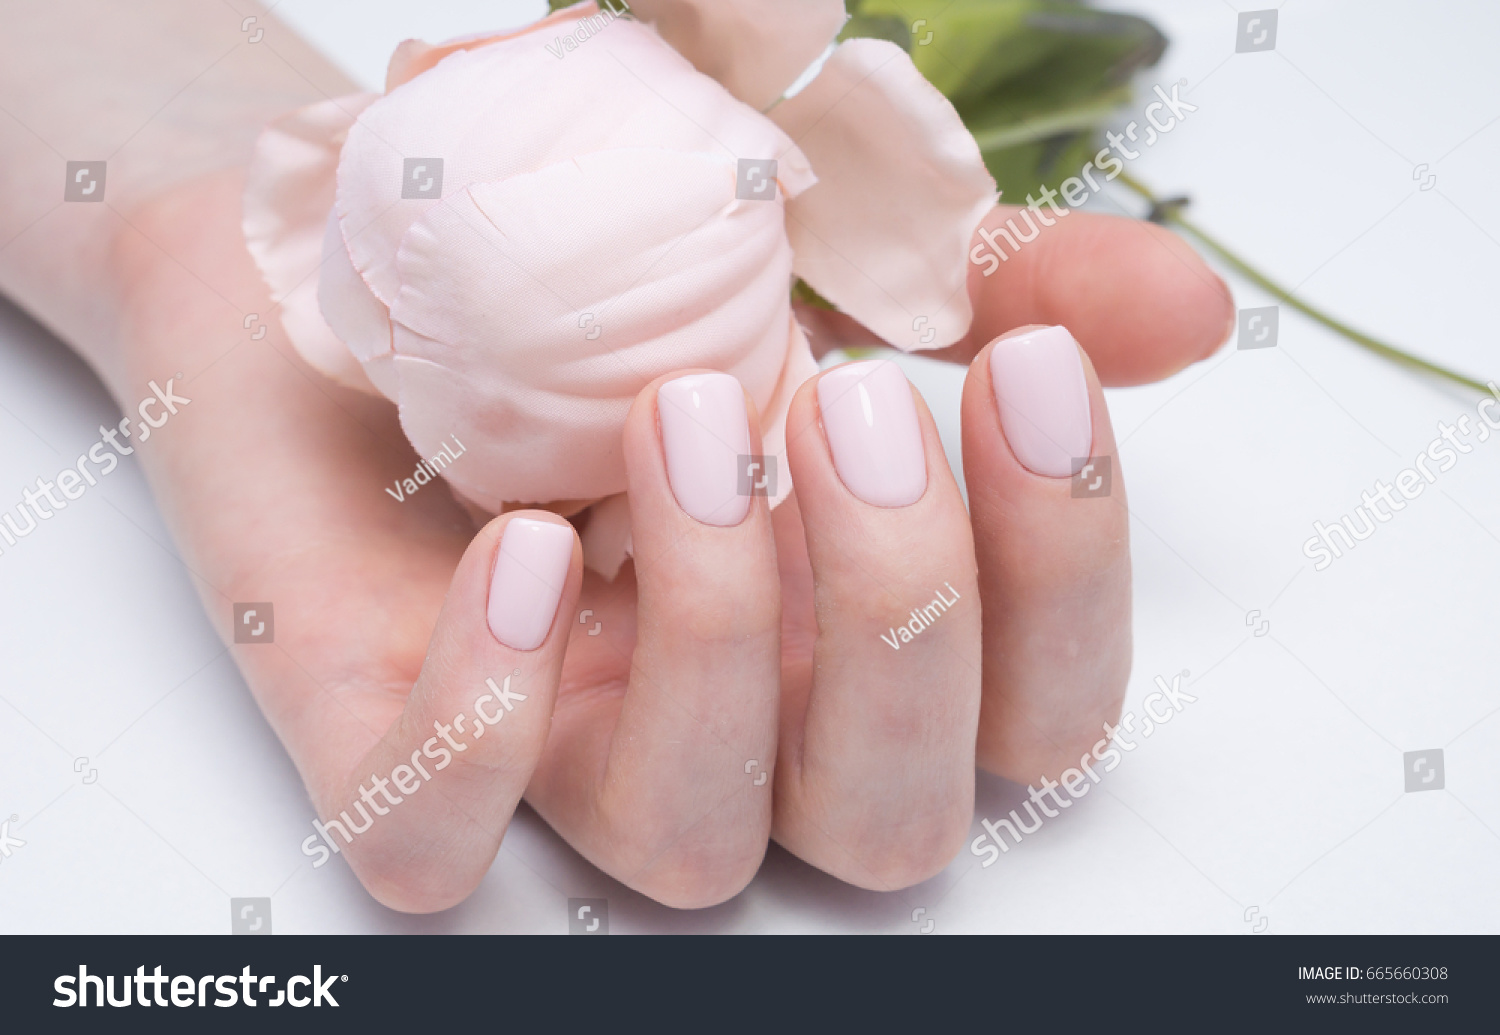 Beautiful Manicure Nail Art Natural Nails Stock Photo (Download Now ...